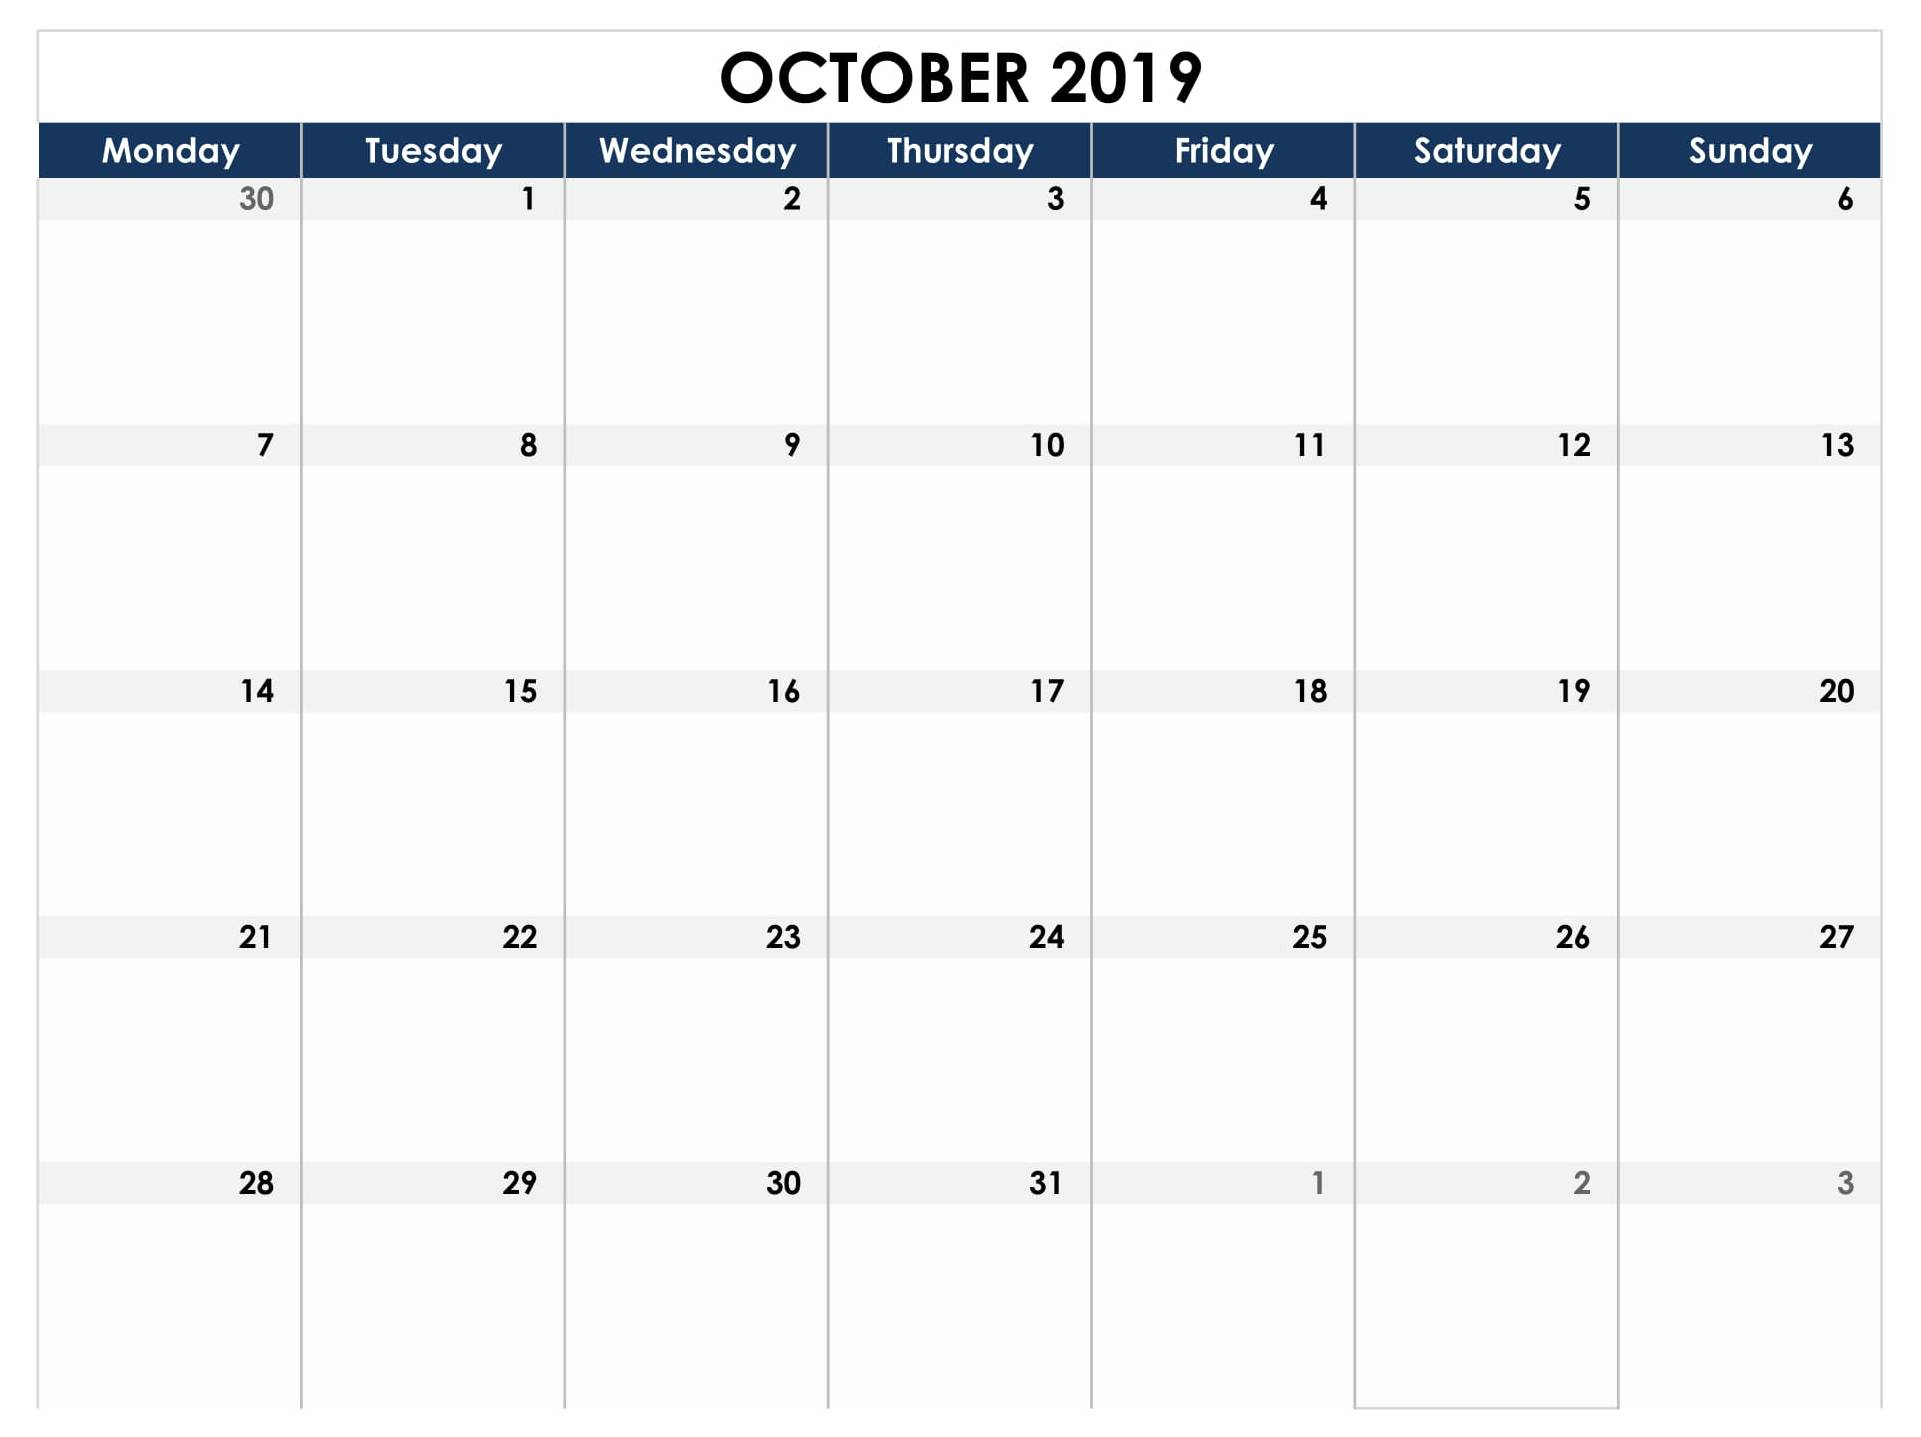 October 2019 Calendar UK Bank Holidays